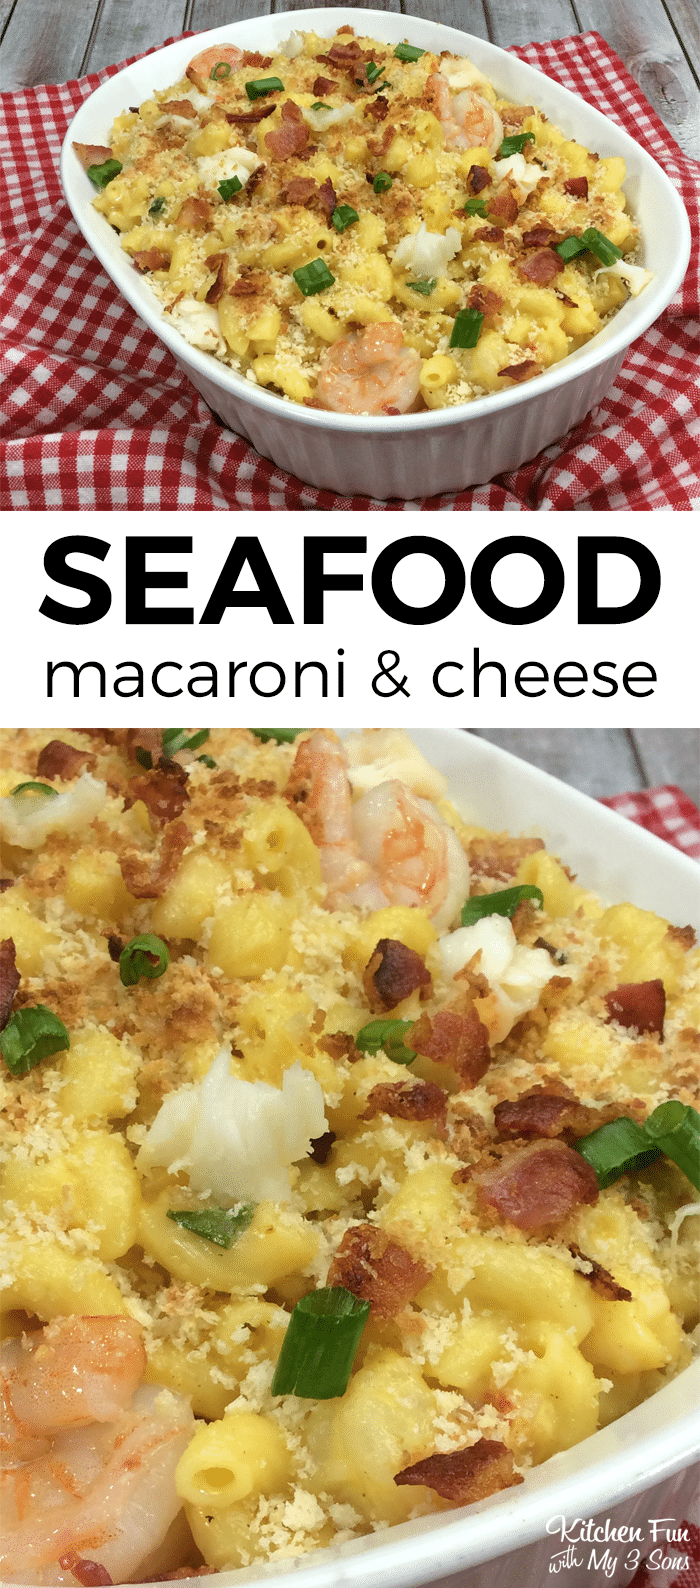 Seafood Macaroni and Cheese